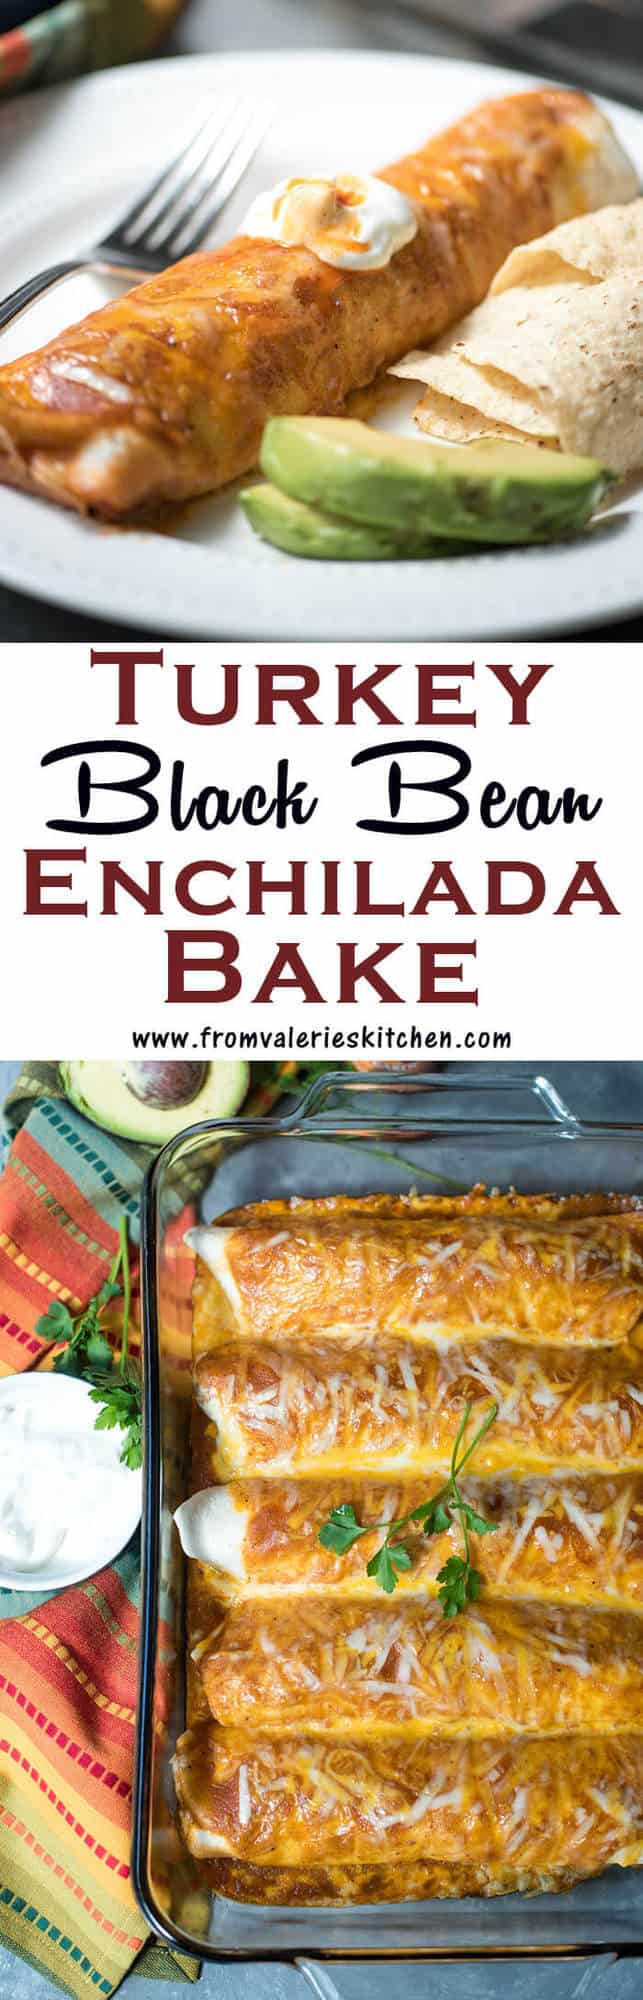 This Turkey Black Bean Enchilada Bake has a creamy, flavorful filling of lean ground turkey, black beans, corn, and diced tomatoes that is rolled in tortillas and topped with enchilada sauce and cheese. The recipe makes enough to feed a crowd or pop one dish in the freezer for an easy dinner when you need it!